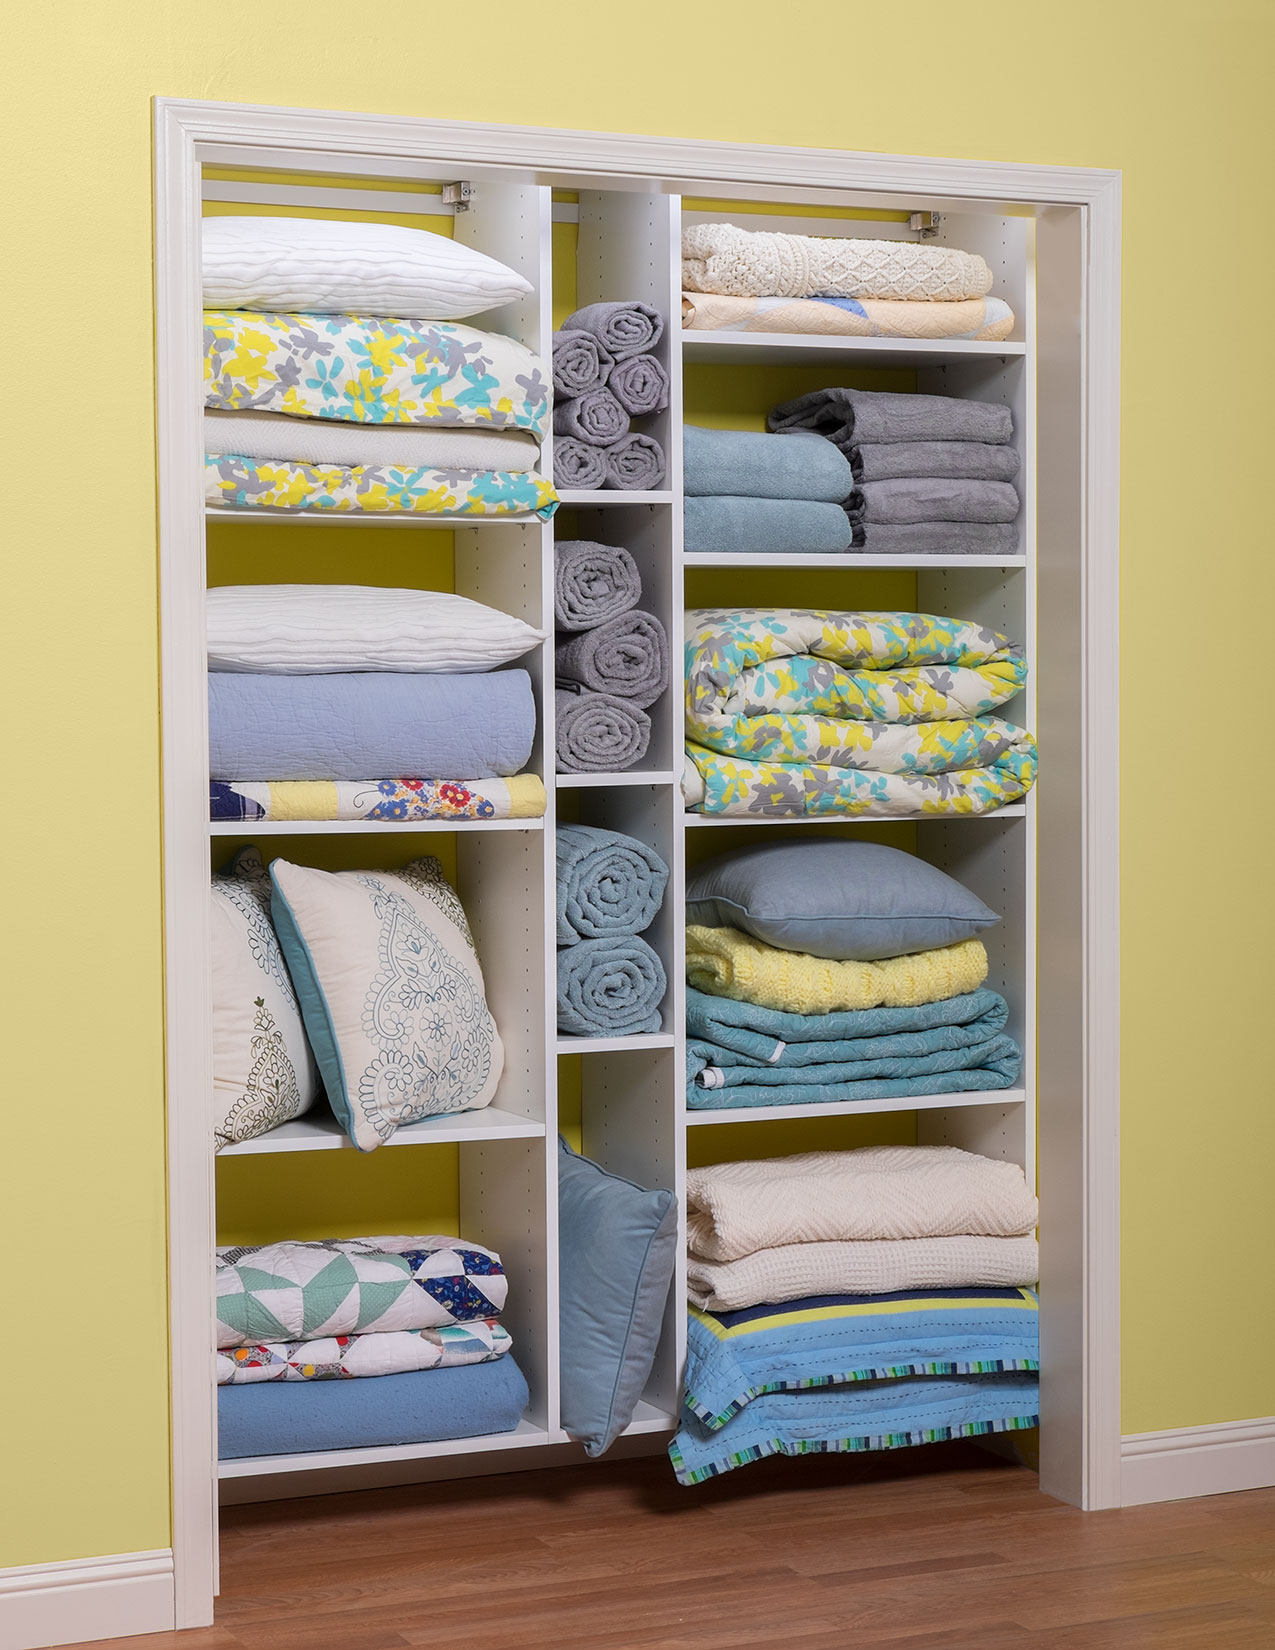 Adjule Shelving In Linen Closet For Storage Solutions Organized Cleaning Supplies Utility